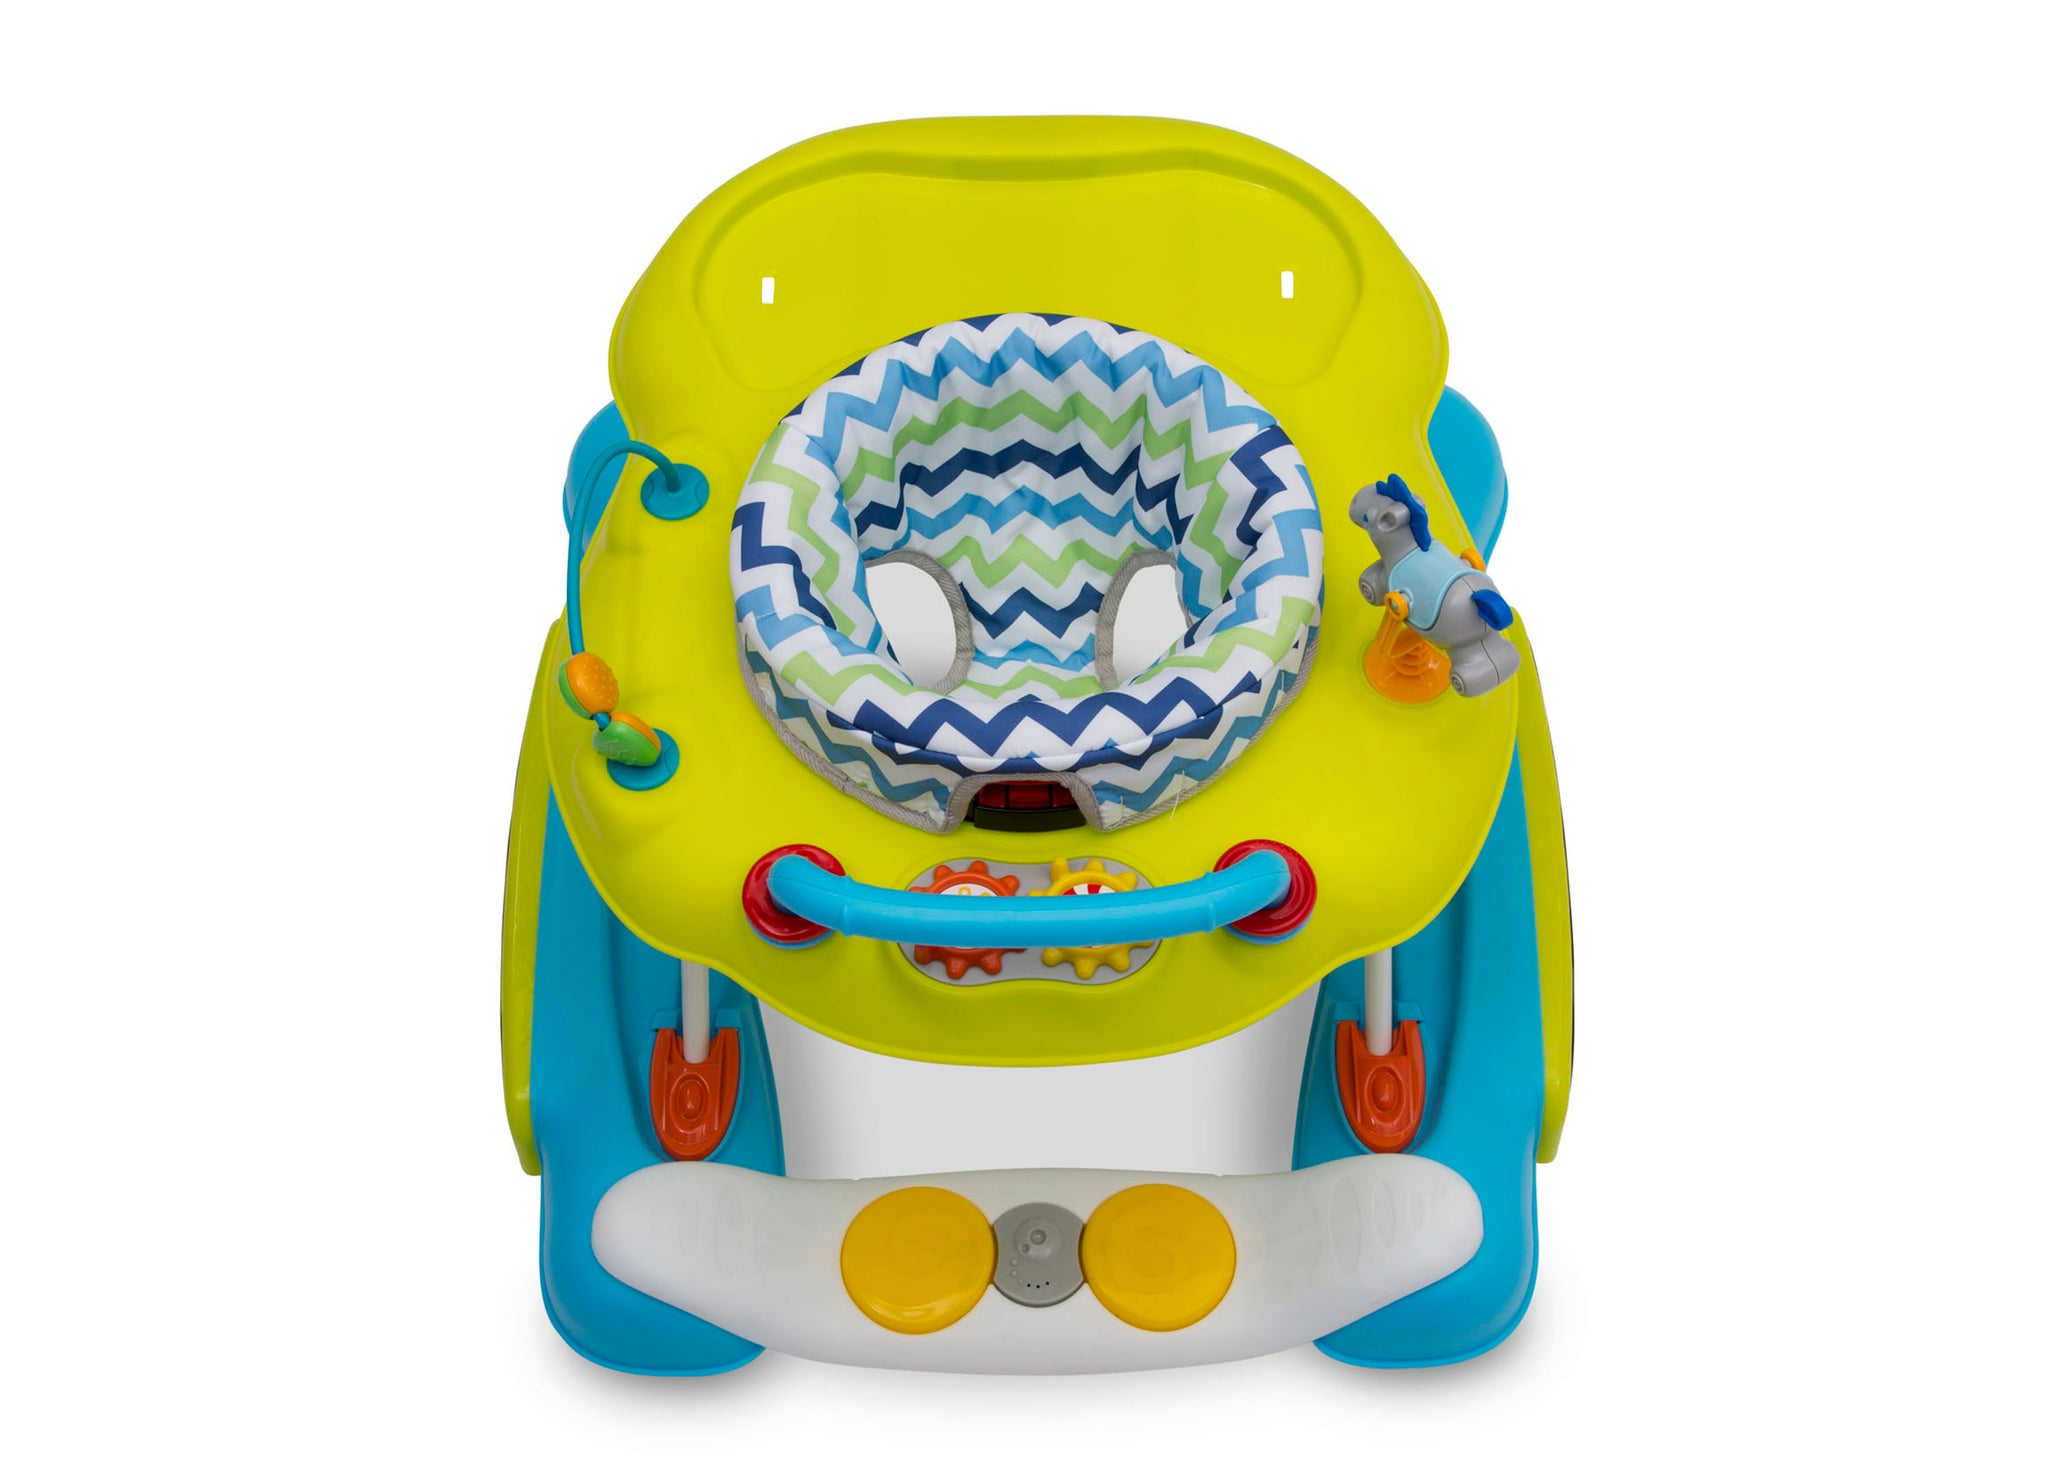 Delta Children Blue/Green (2163) 4-in-1 Discover & Play Musical Walker, Top Silo View